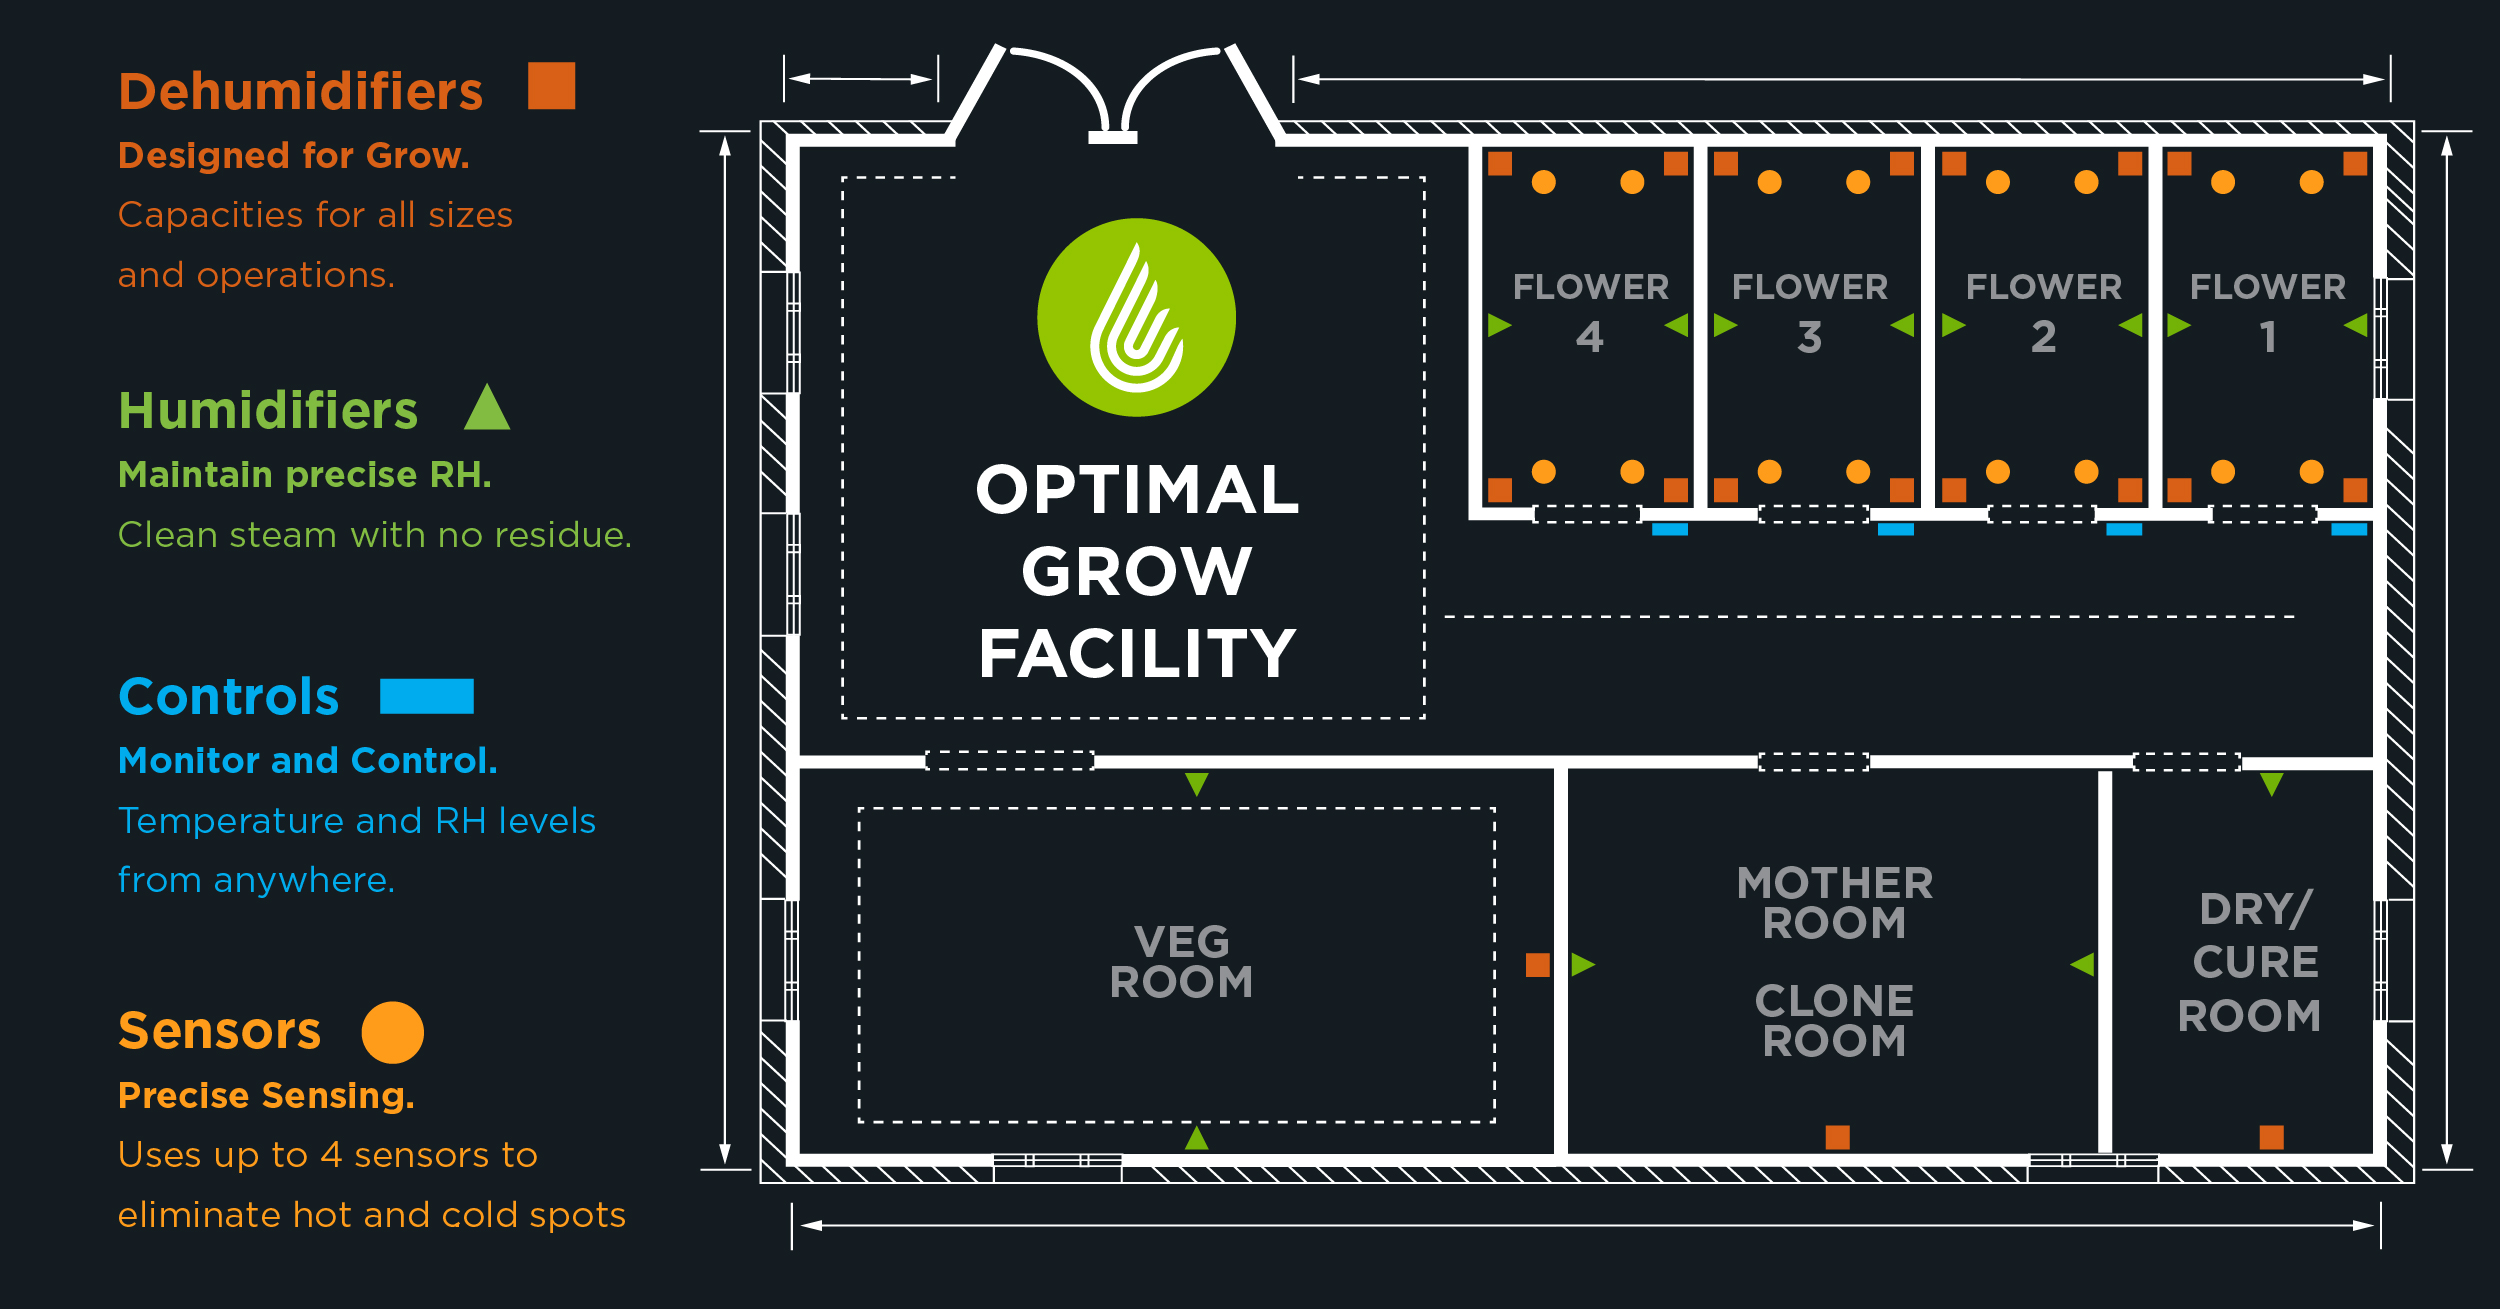 anden-grow-room-tips-for-dehumidifier-placement- March-2019 ... on led diagram, slingshot diagram, tomato diagram, hydro diagram, cloning diagram, ozone diagram, ventilation diagram, cannabis diagram, seeds diagram, lighting diagram, humidity diagram, aquaculture diagram, plants diagram, grow tent ventilation setup, home diagram, ballast diagram, soil diagram, tent diagram, roots diagram, propagation diagram,